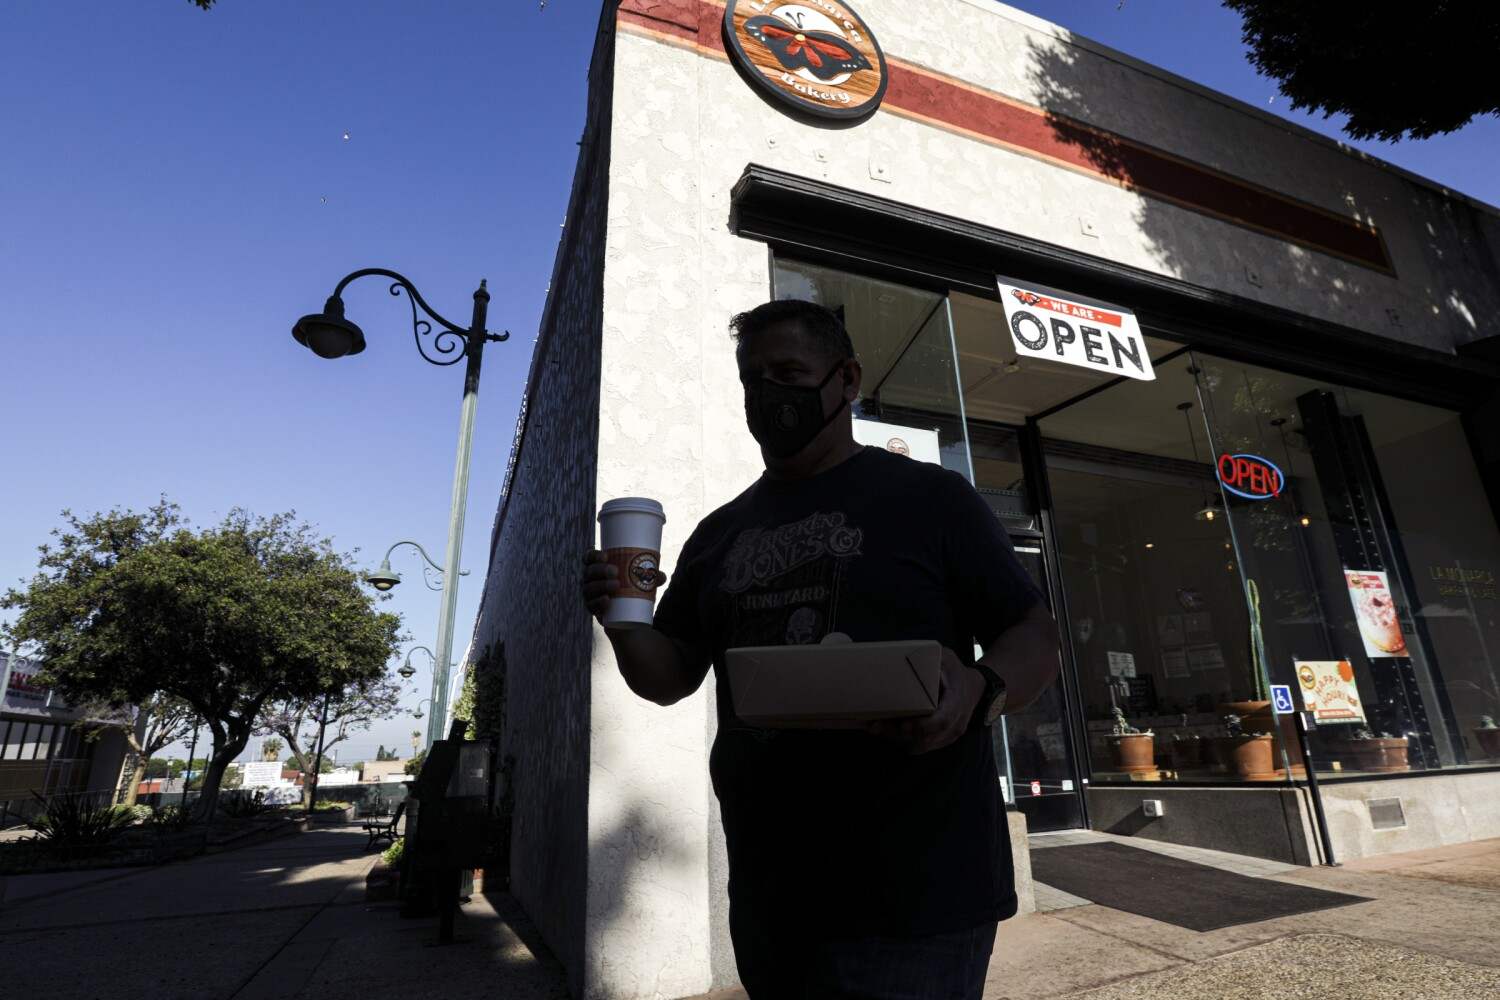 COVID-19 restrictions protected California's economy. Now it's poised for a 'euphoric' rebound